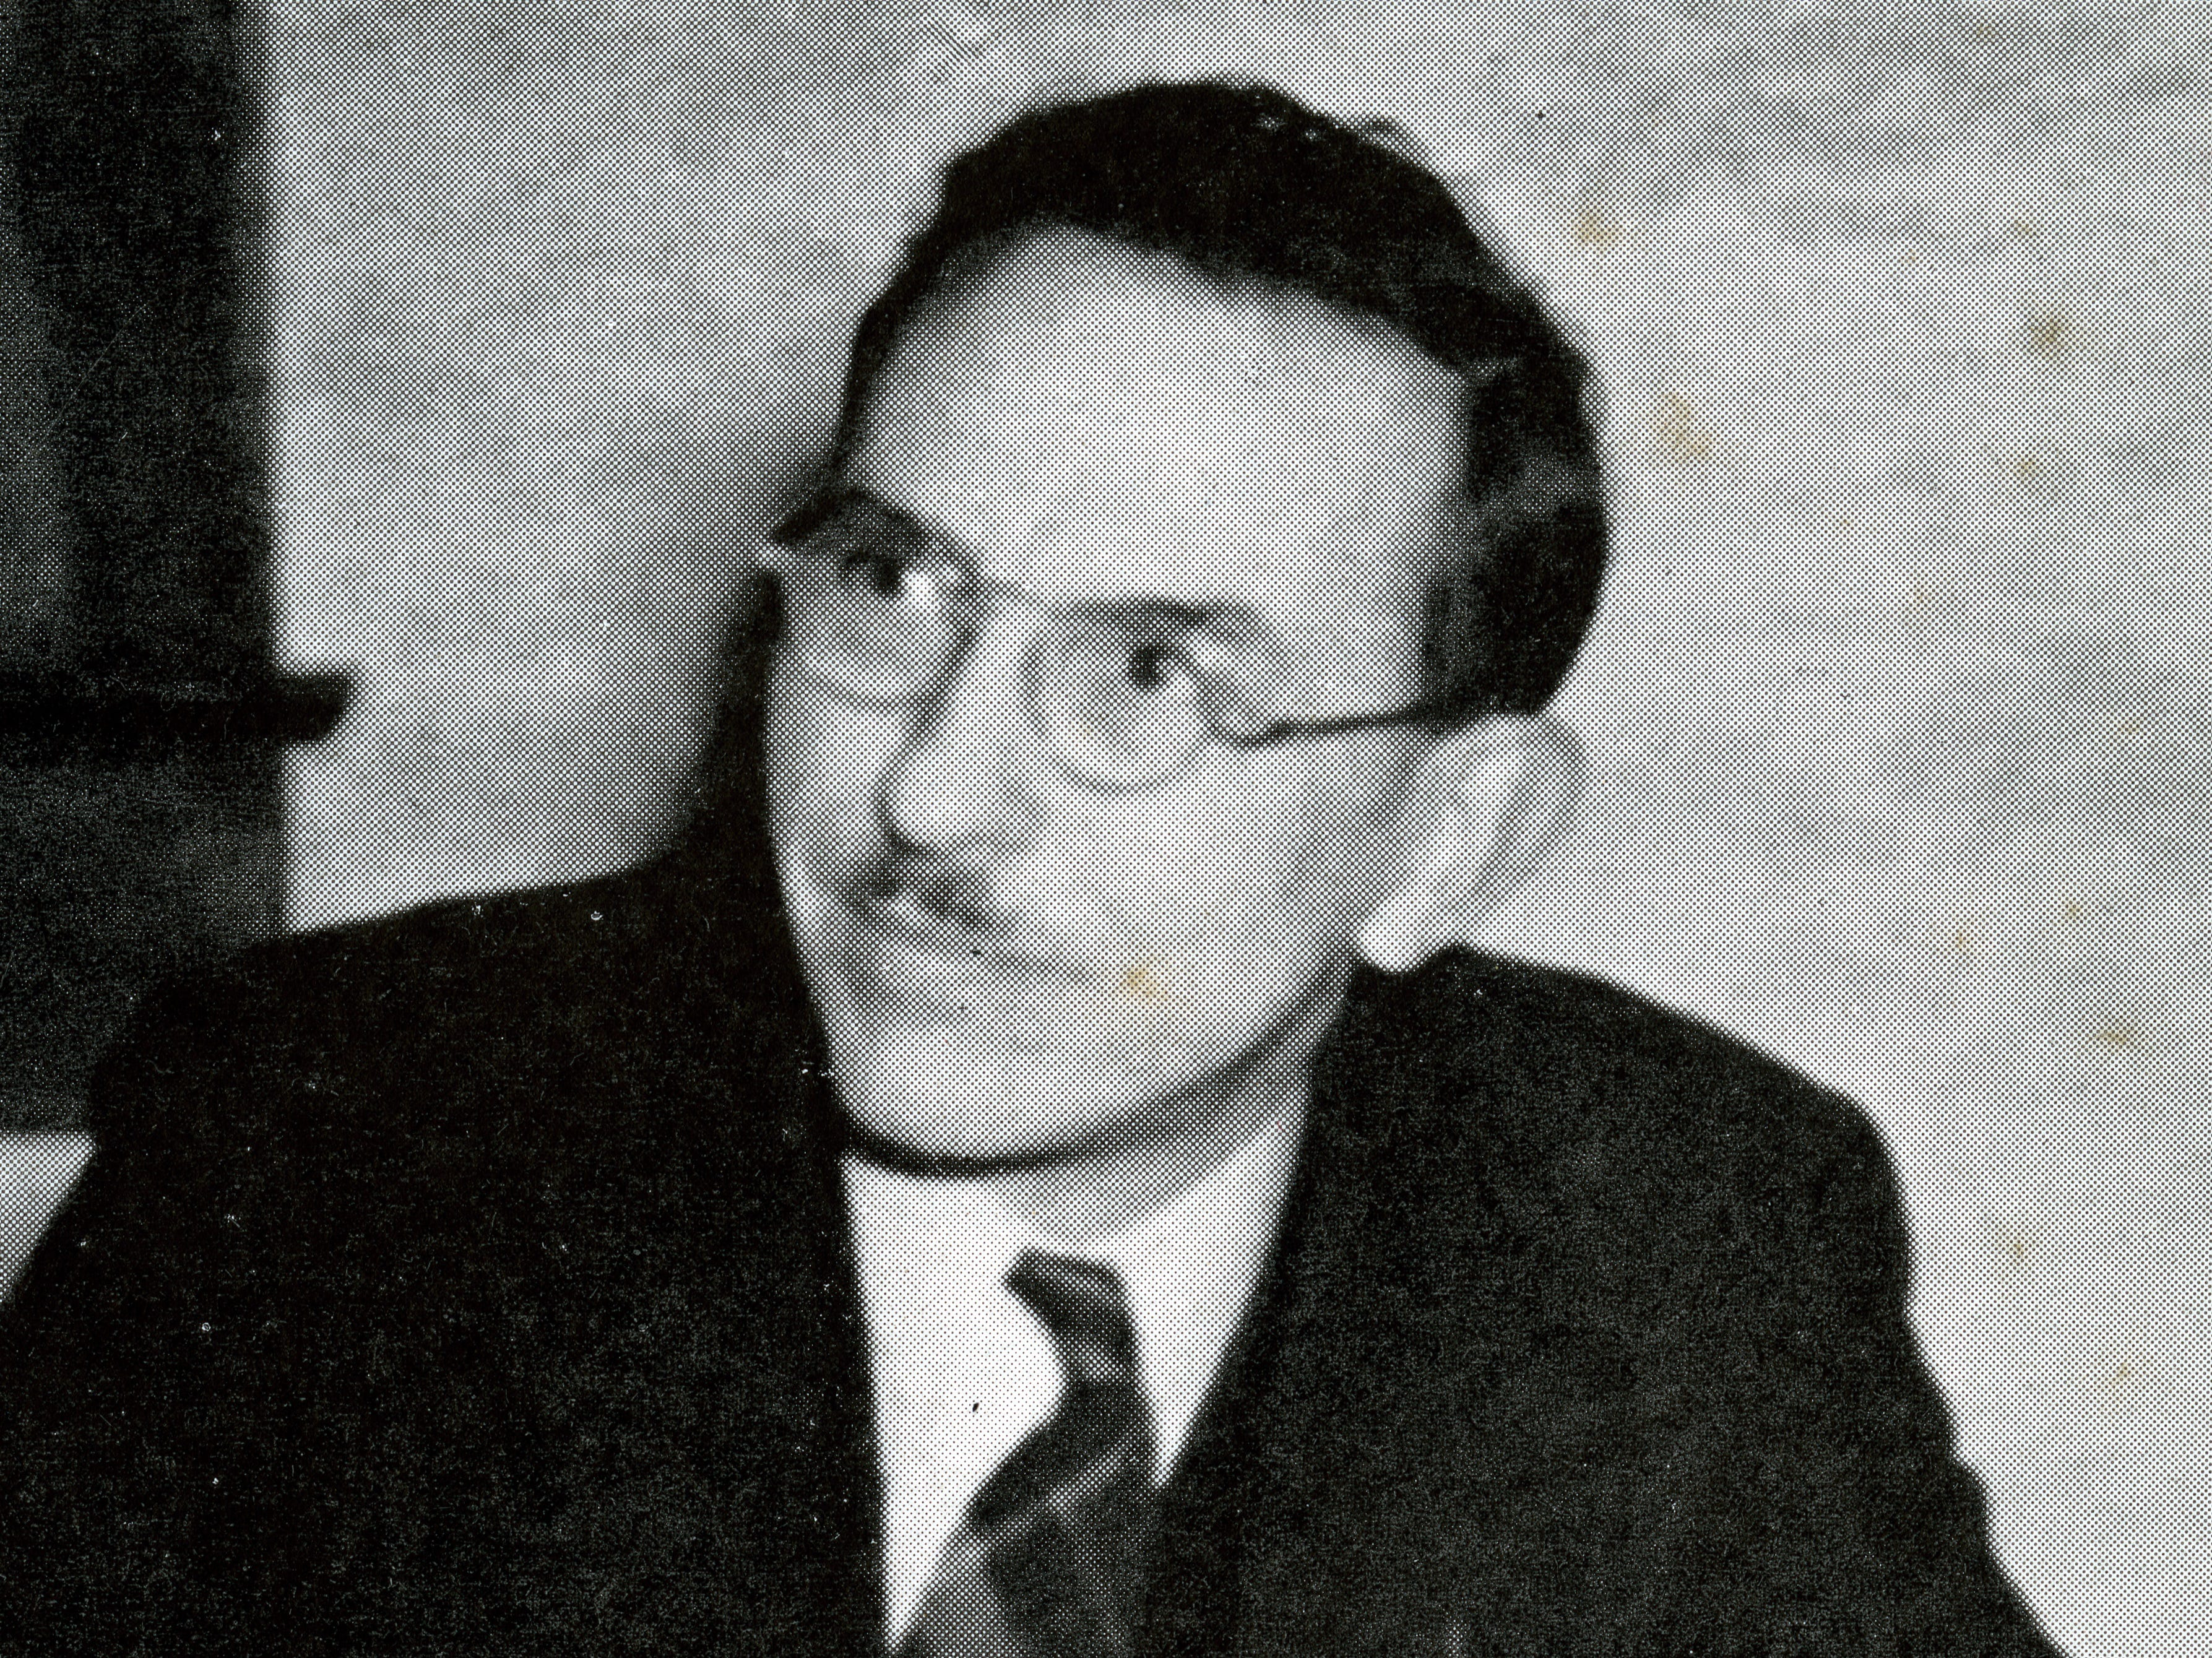 Dr. Carl Sumner Knopf, as photographed in Willamette University's Wallulah Yearbook in 1942. His name comes up as possible participant in the stand against an angry mob of townspeople to protect the Japanese Community Church the night Pearl Harbor was attacked.